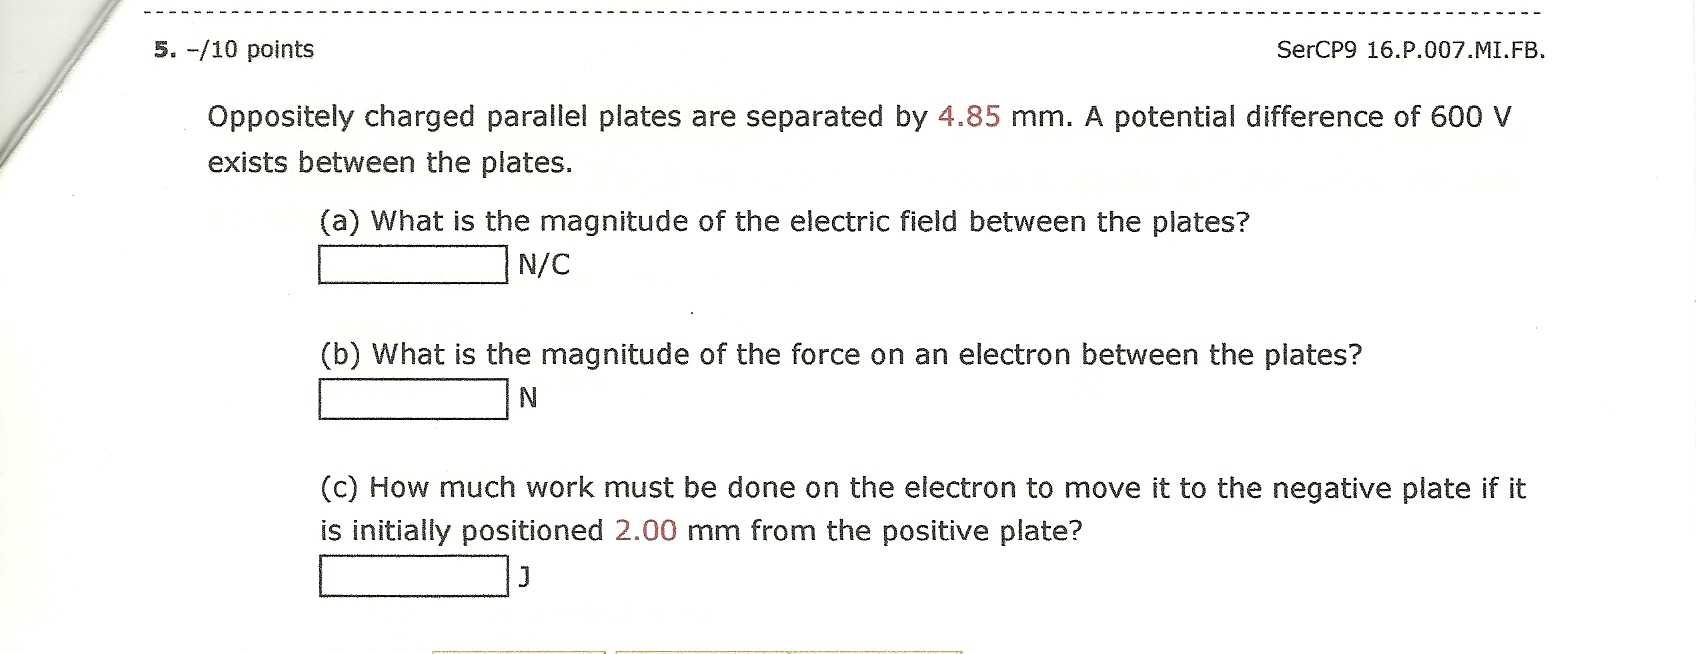 Oppositely charged parallel plates are separated b